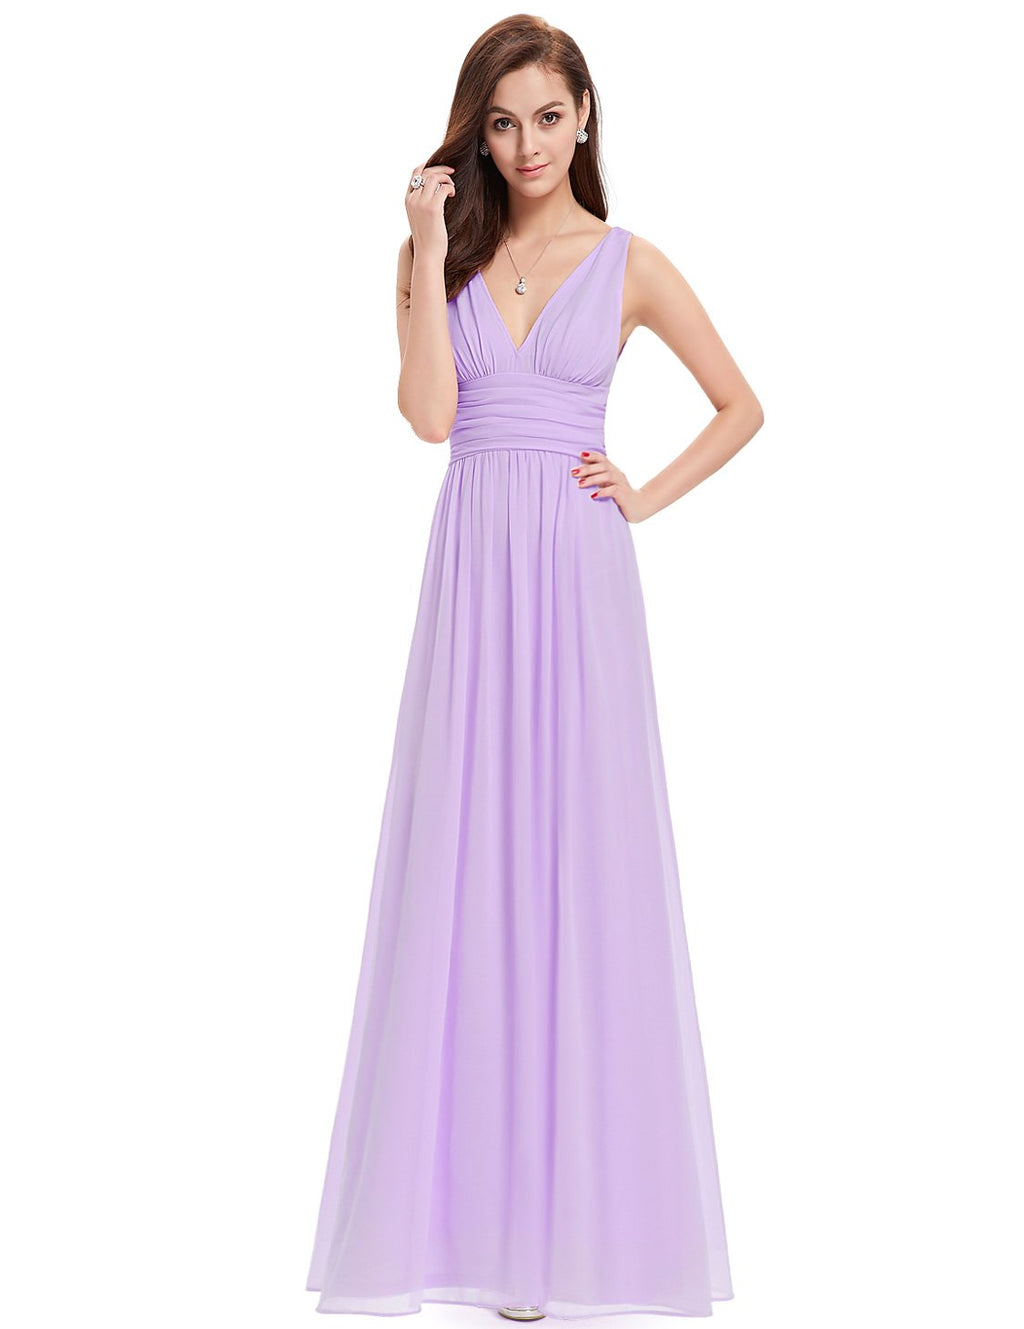 Chiffon Elegant Evening Gown Light Purple